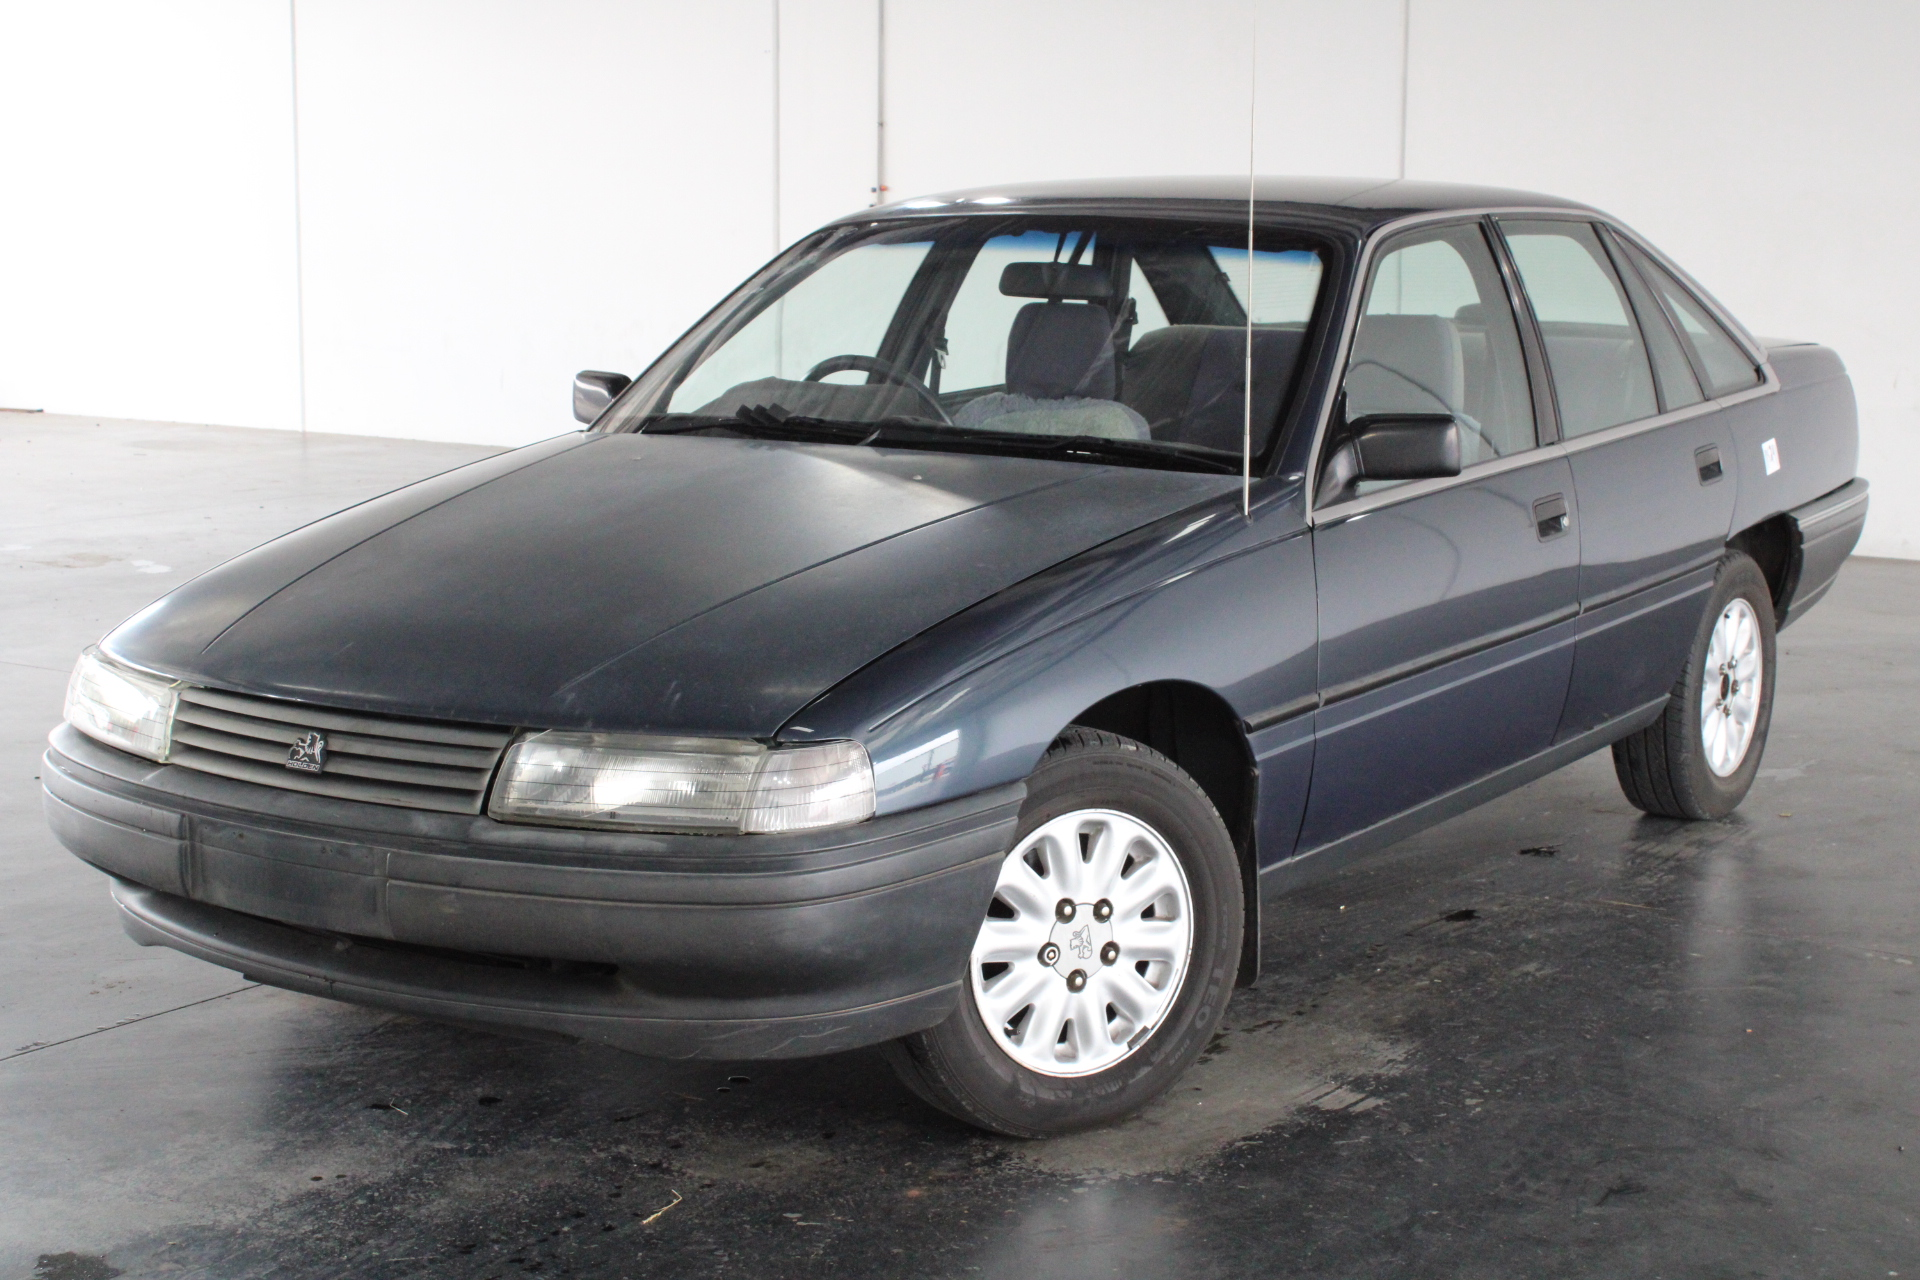 1991 Holden Commodore Executive VN Automatic Sedan